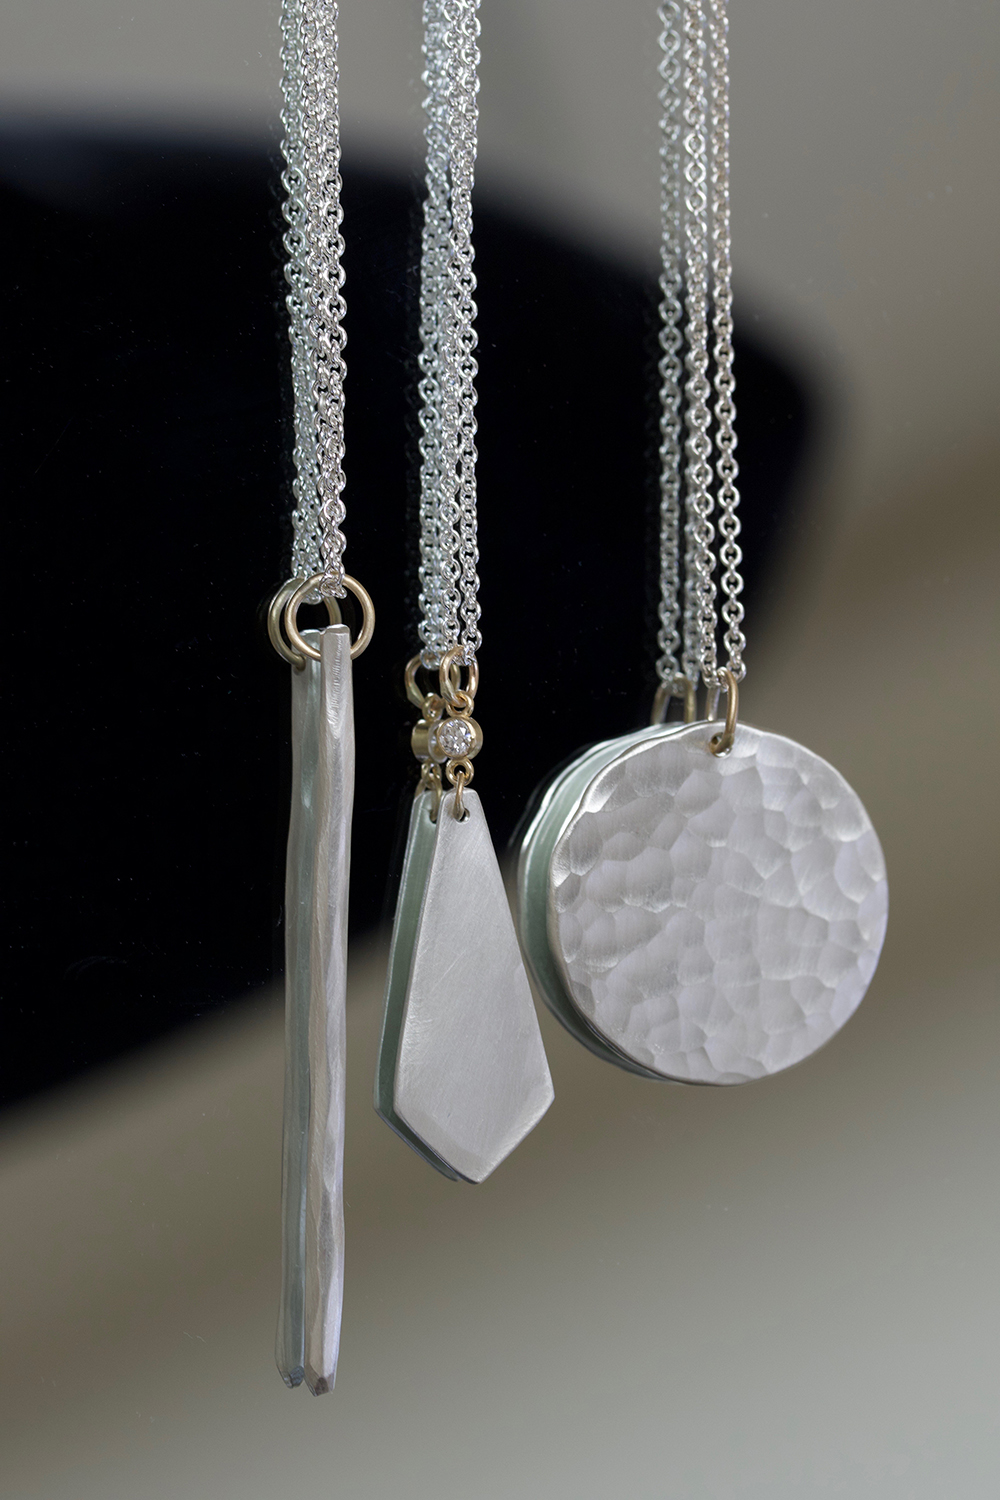 the  Aspen ,  St. Margarets Diamond Drop , and  Sol  necklaces in sterling silver and 14k yellow gold